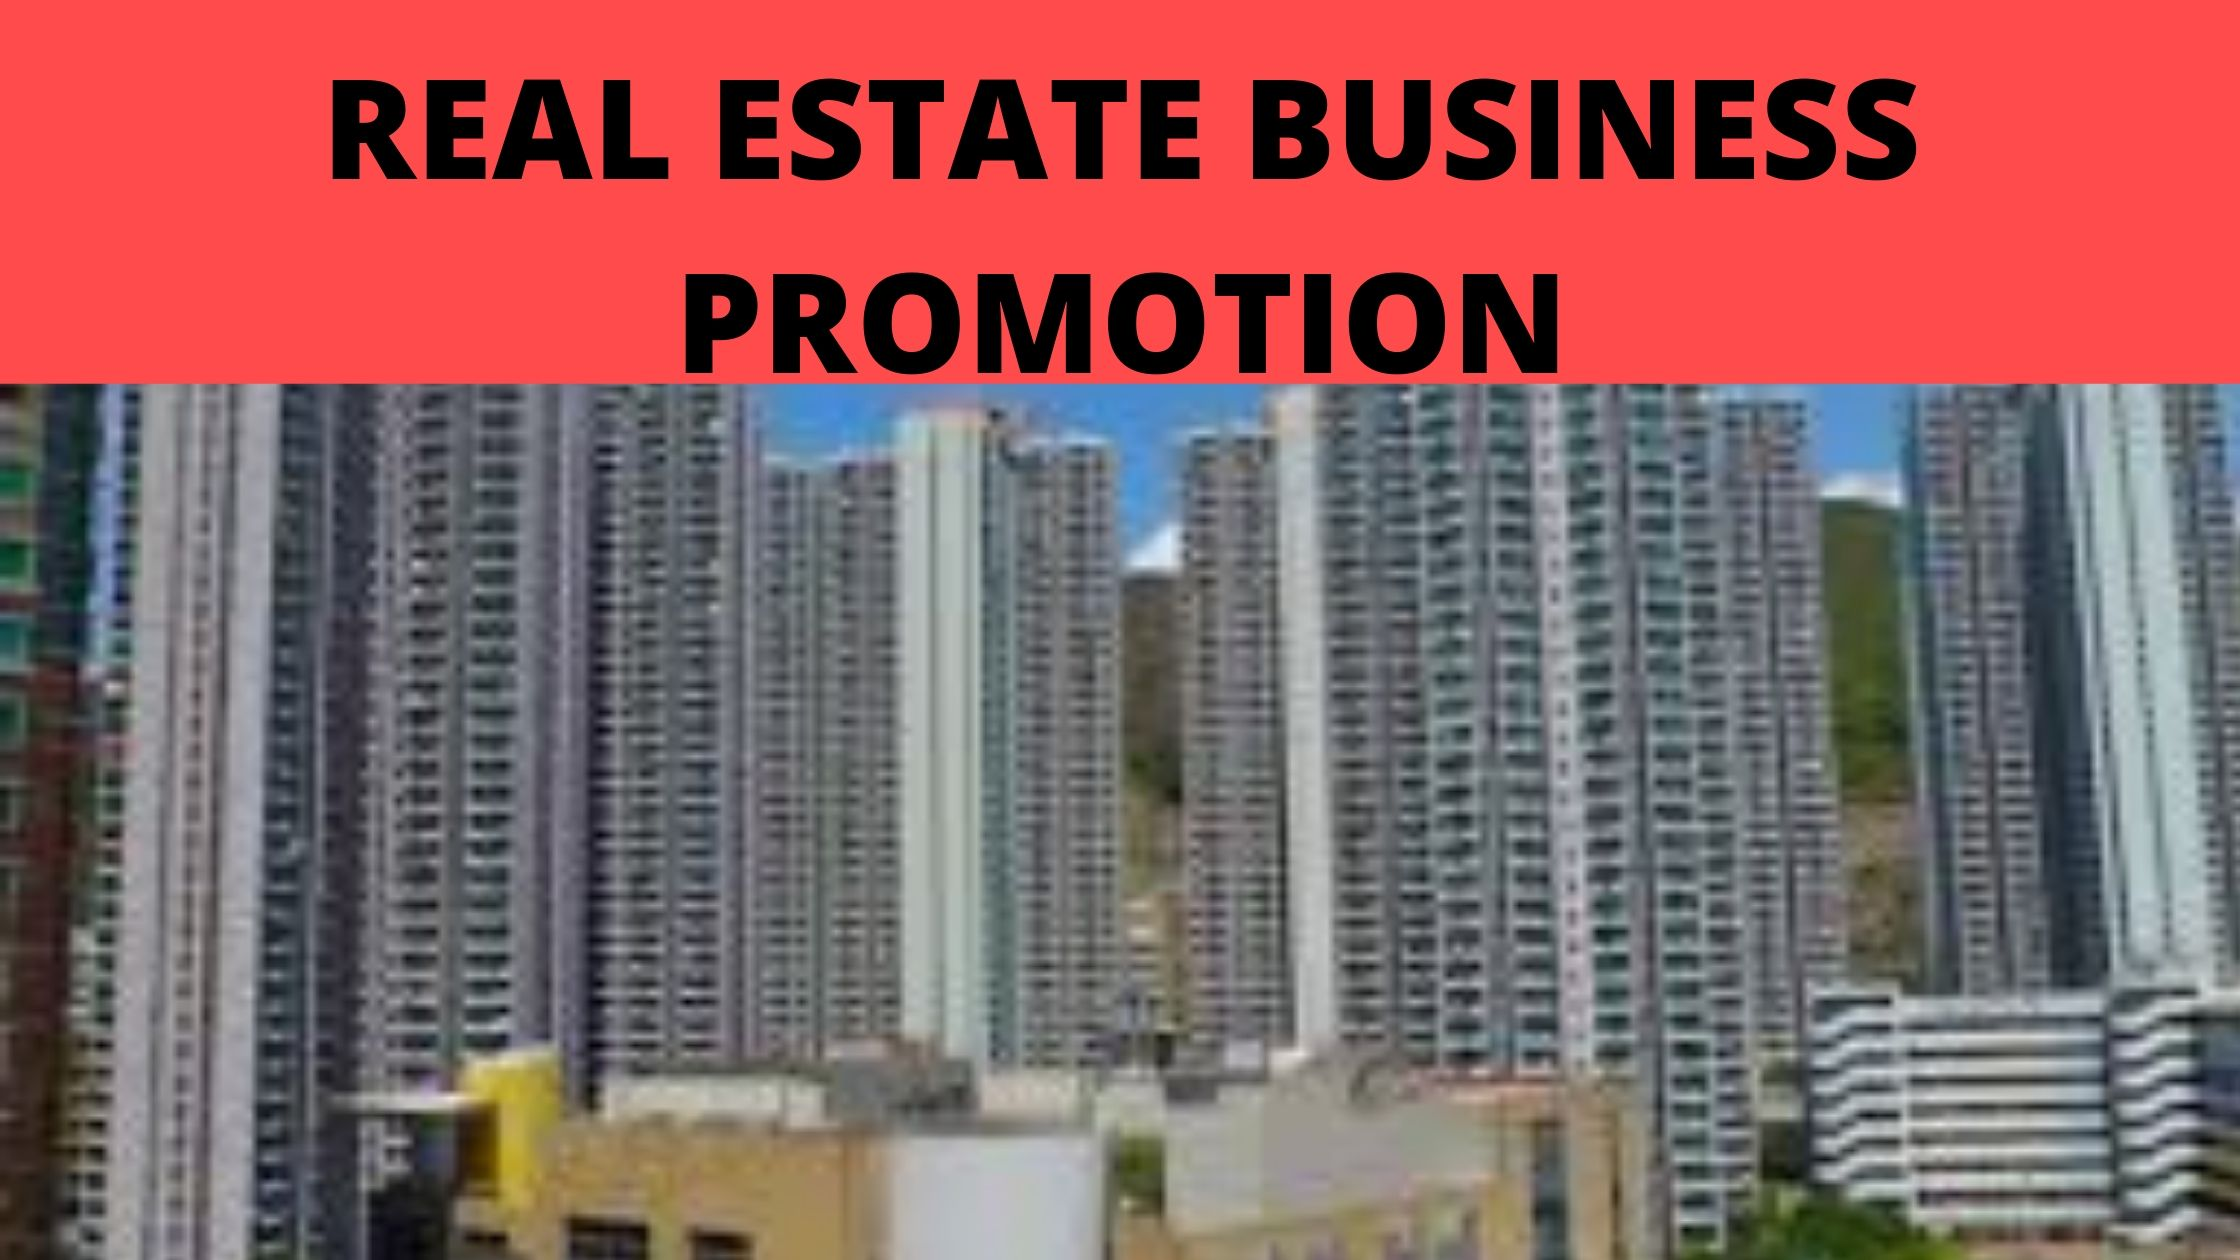 I will generate massive traffic for your Real Estate business for 30 days